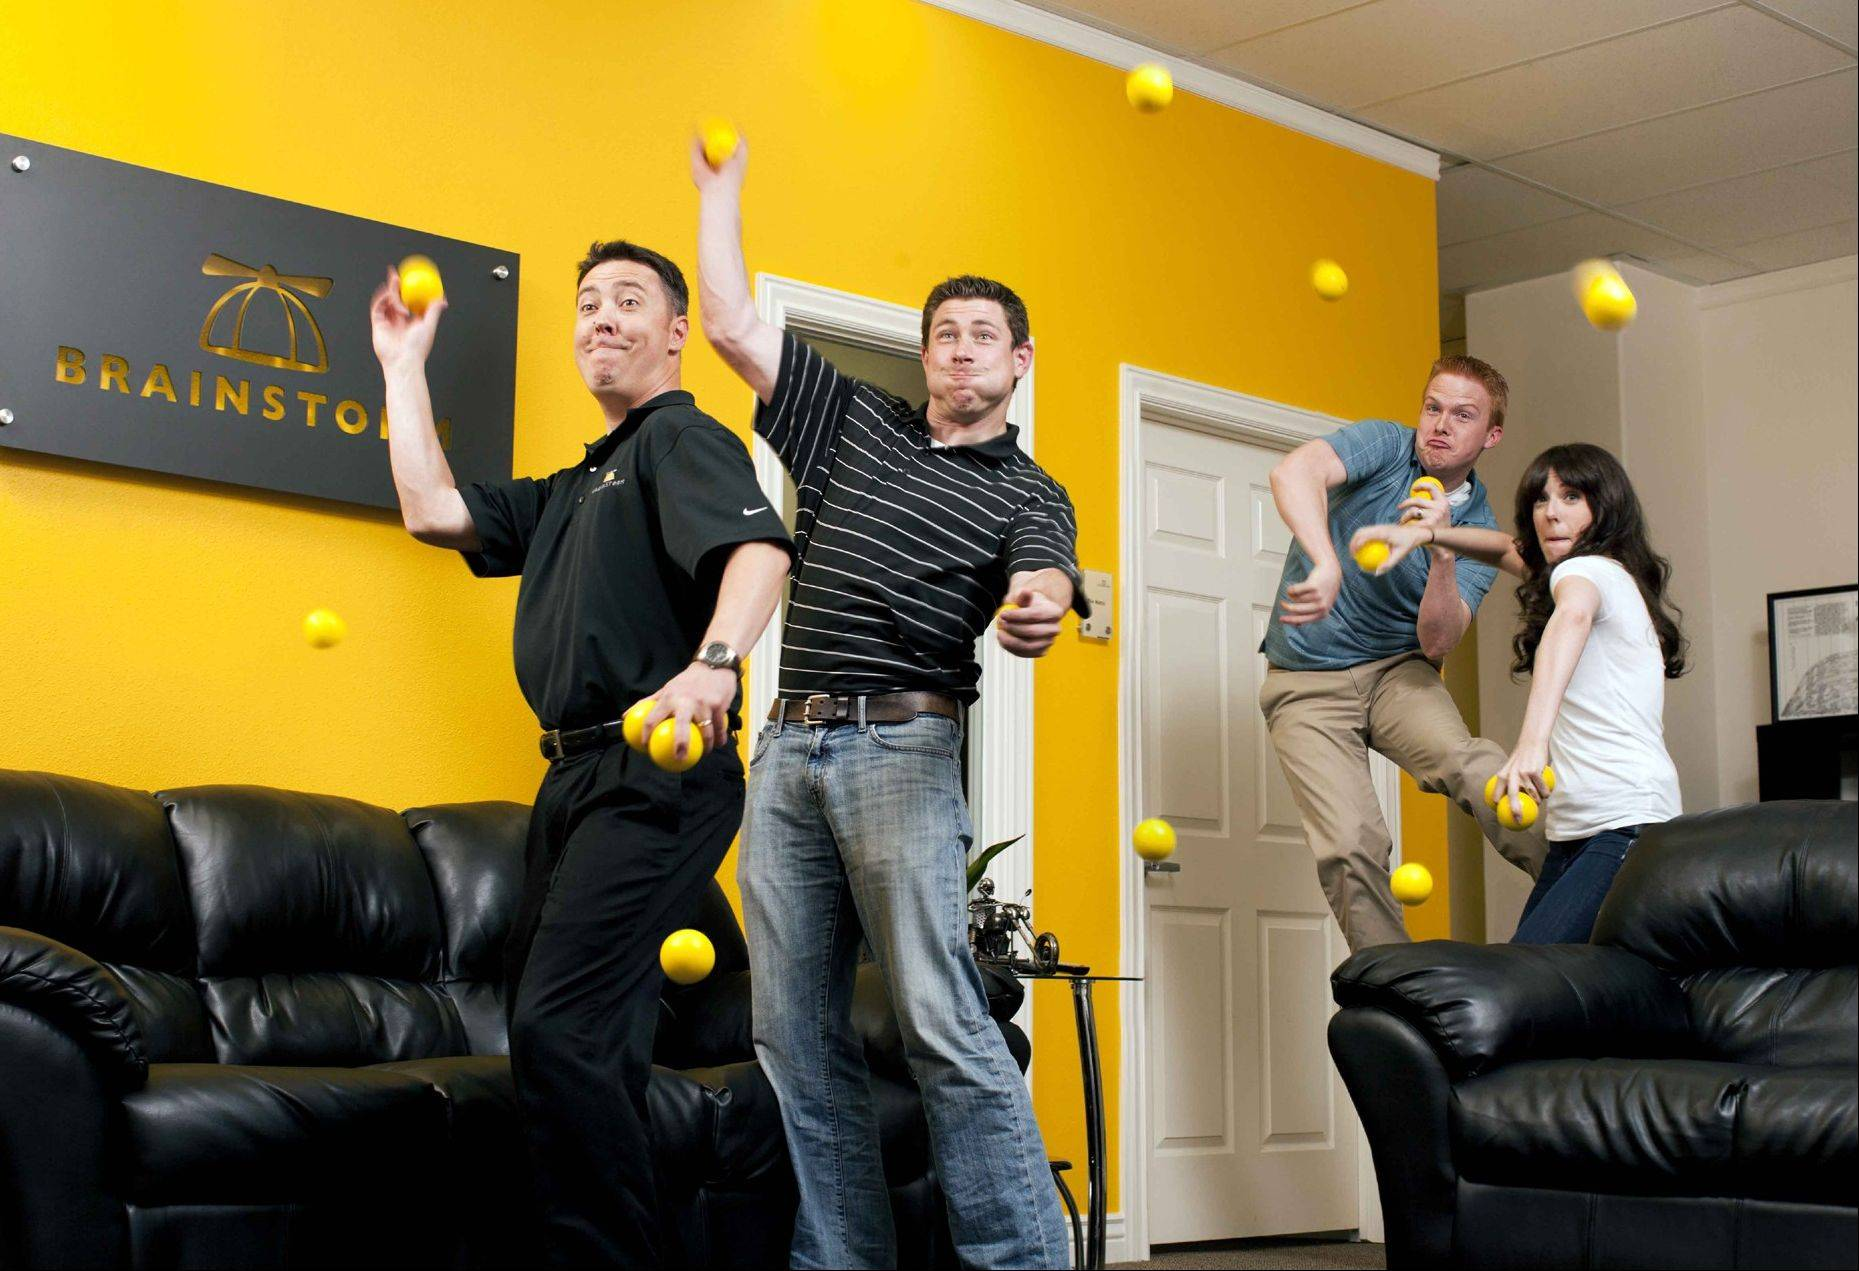 Tyler Rogers, from left, David Grimsman, Jason Eggett and Jourdan Strain enjoy a light moment tossing balls to relieve stress. BrainStorm strives to keep a lively, and inspiring office atmosphere, and sometimes that includes random events like dodgeball, dance-offs, crab walk races and more.